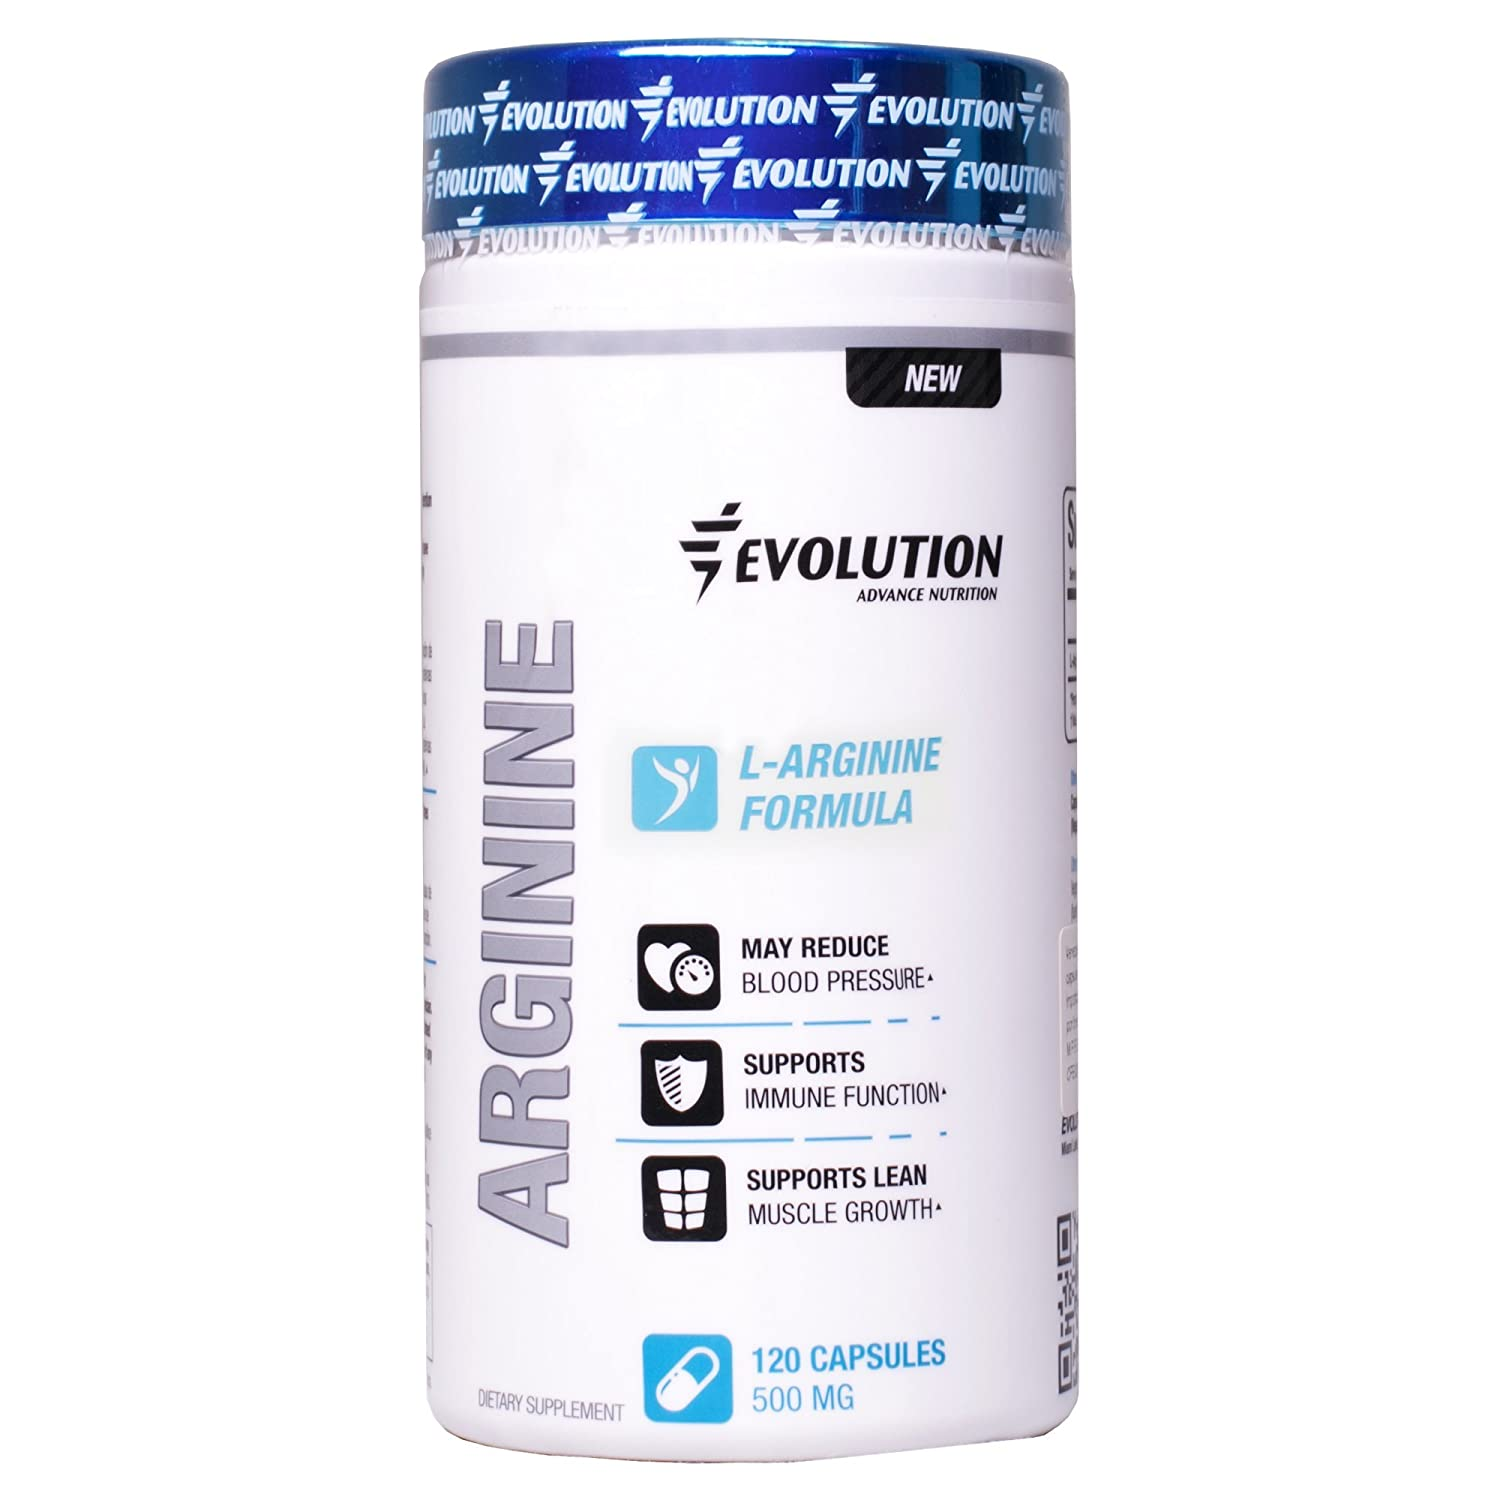 Amazon.com: Evolution Advance Nutrition Fermented L-arginine capsules (120 vegetarian capsules) dietary supplement 1,000mg per serving 60 day supply.